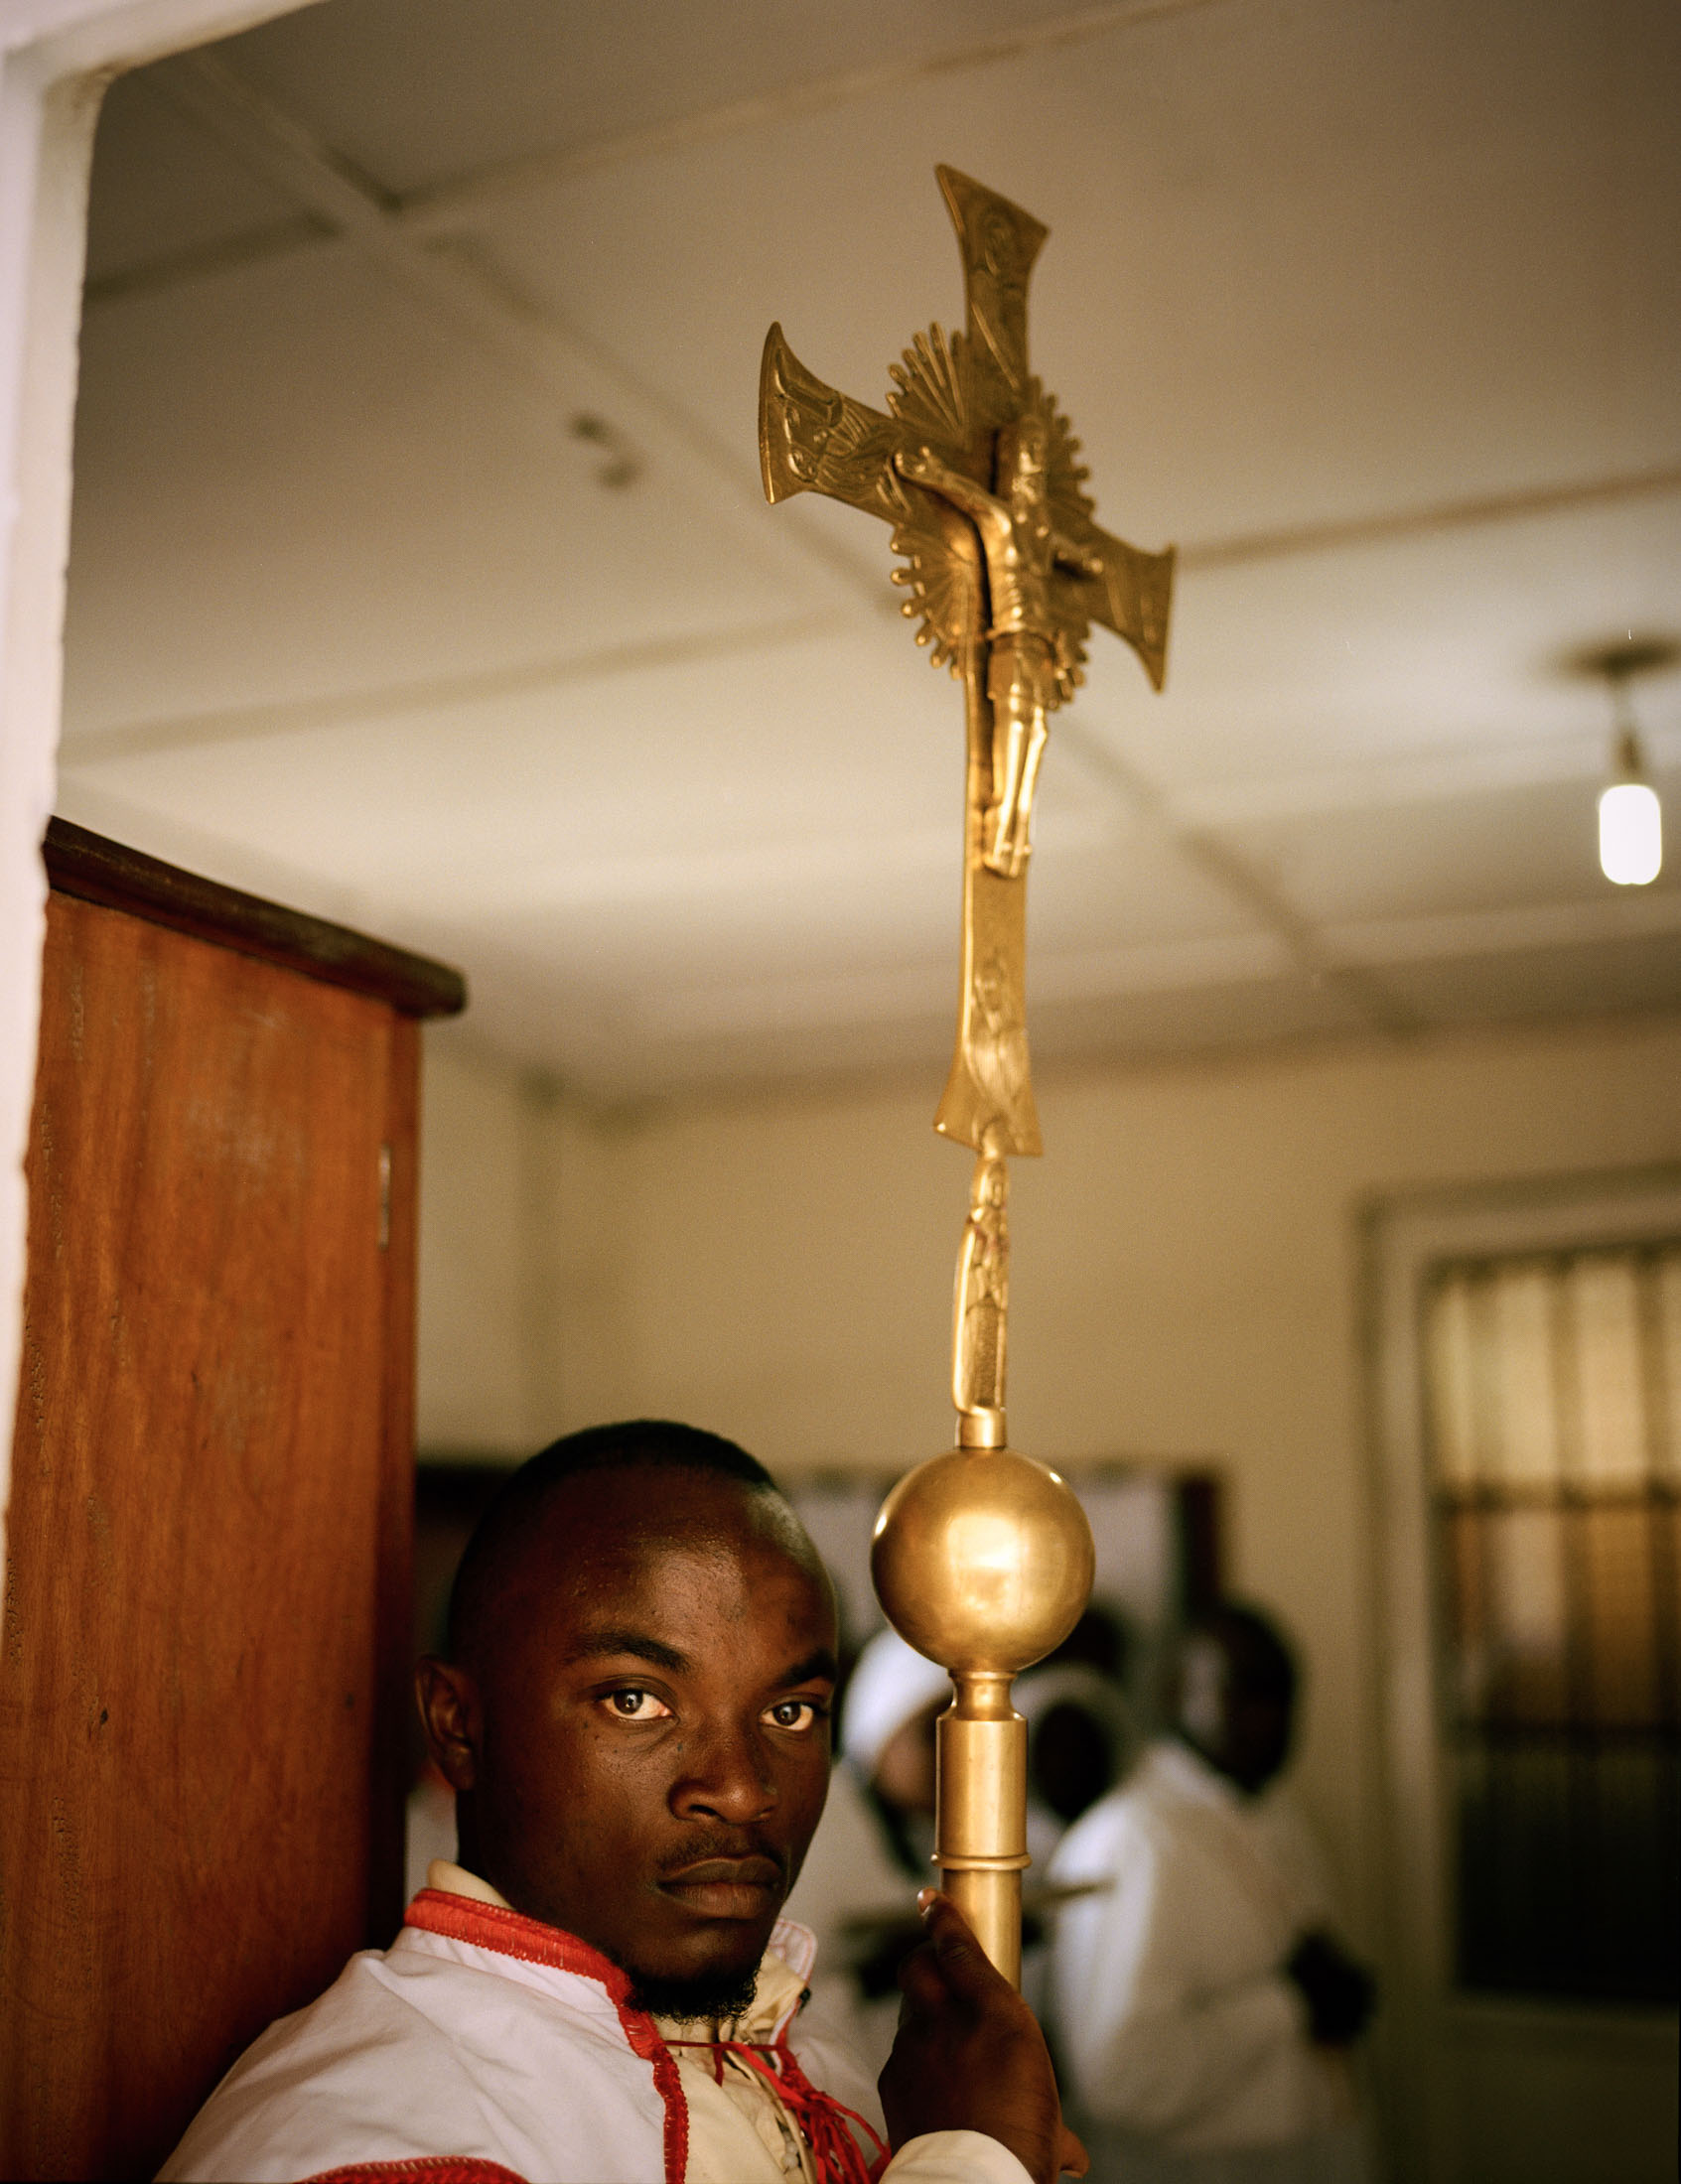 An acolyte waits with the ceremonial cross of the church of the Anuarite de Goma, North Kivu Province, Eastern DRC.